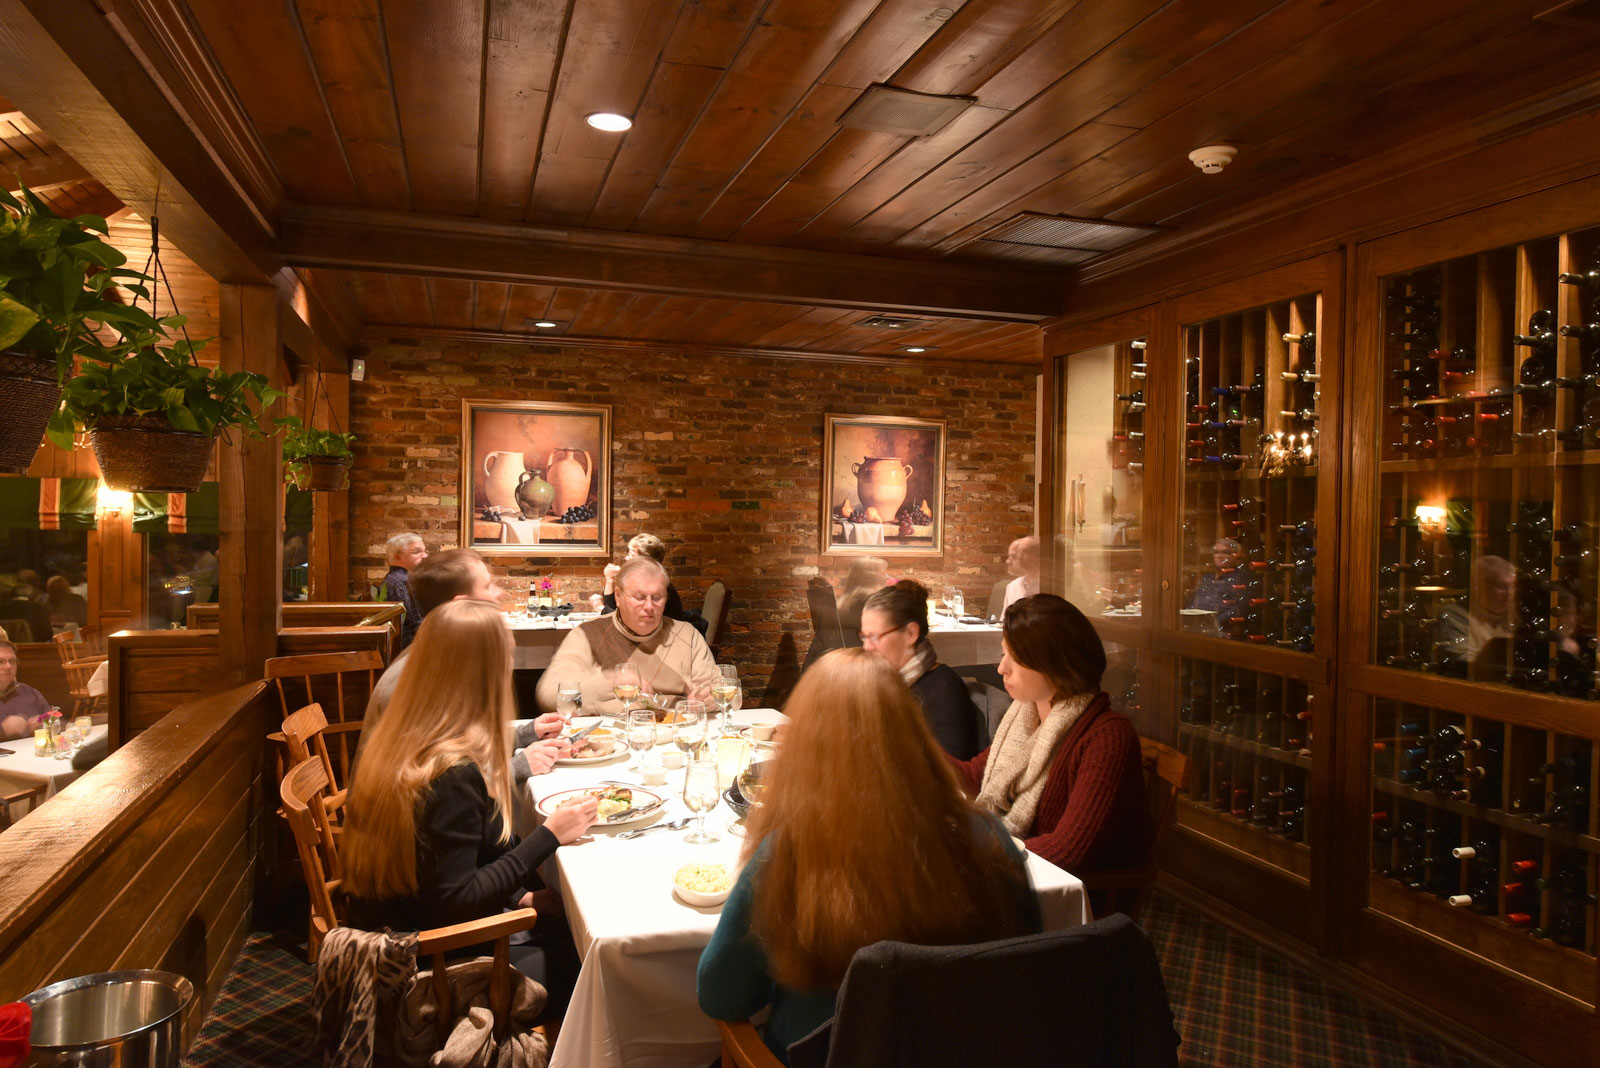 Ryan S Restaurant A Dining Experience Not To Be Missed